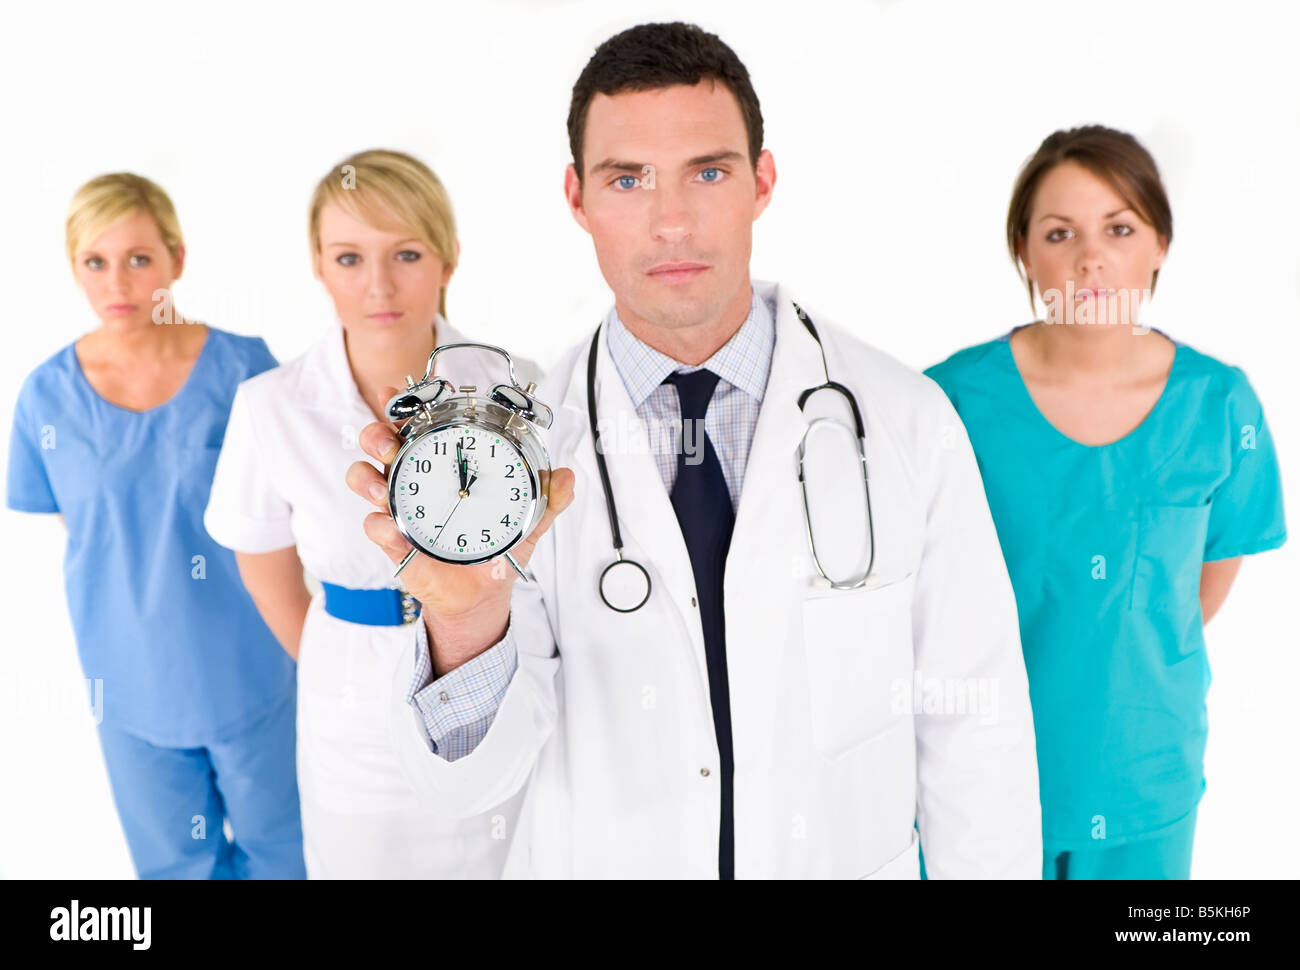 A male doctor backed by his medical team holding out an alarm clock ticking ever closer to 12 o clock. Focus on - Stock Image